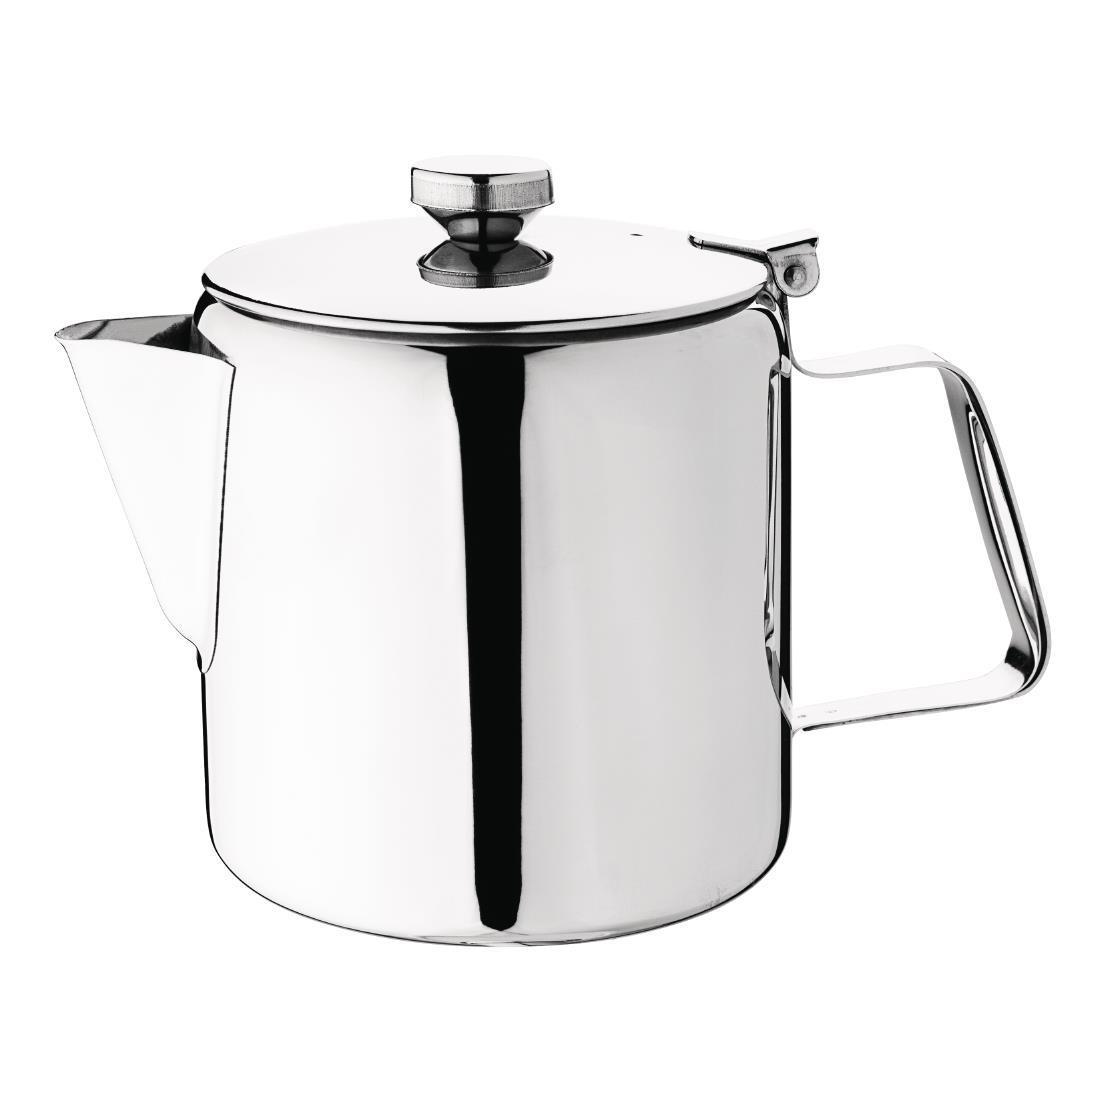 Olympia Concorde Stainless Steel Teapot 1.35Ltr